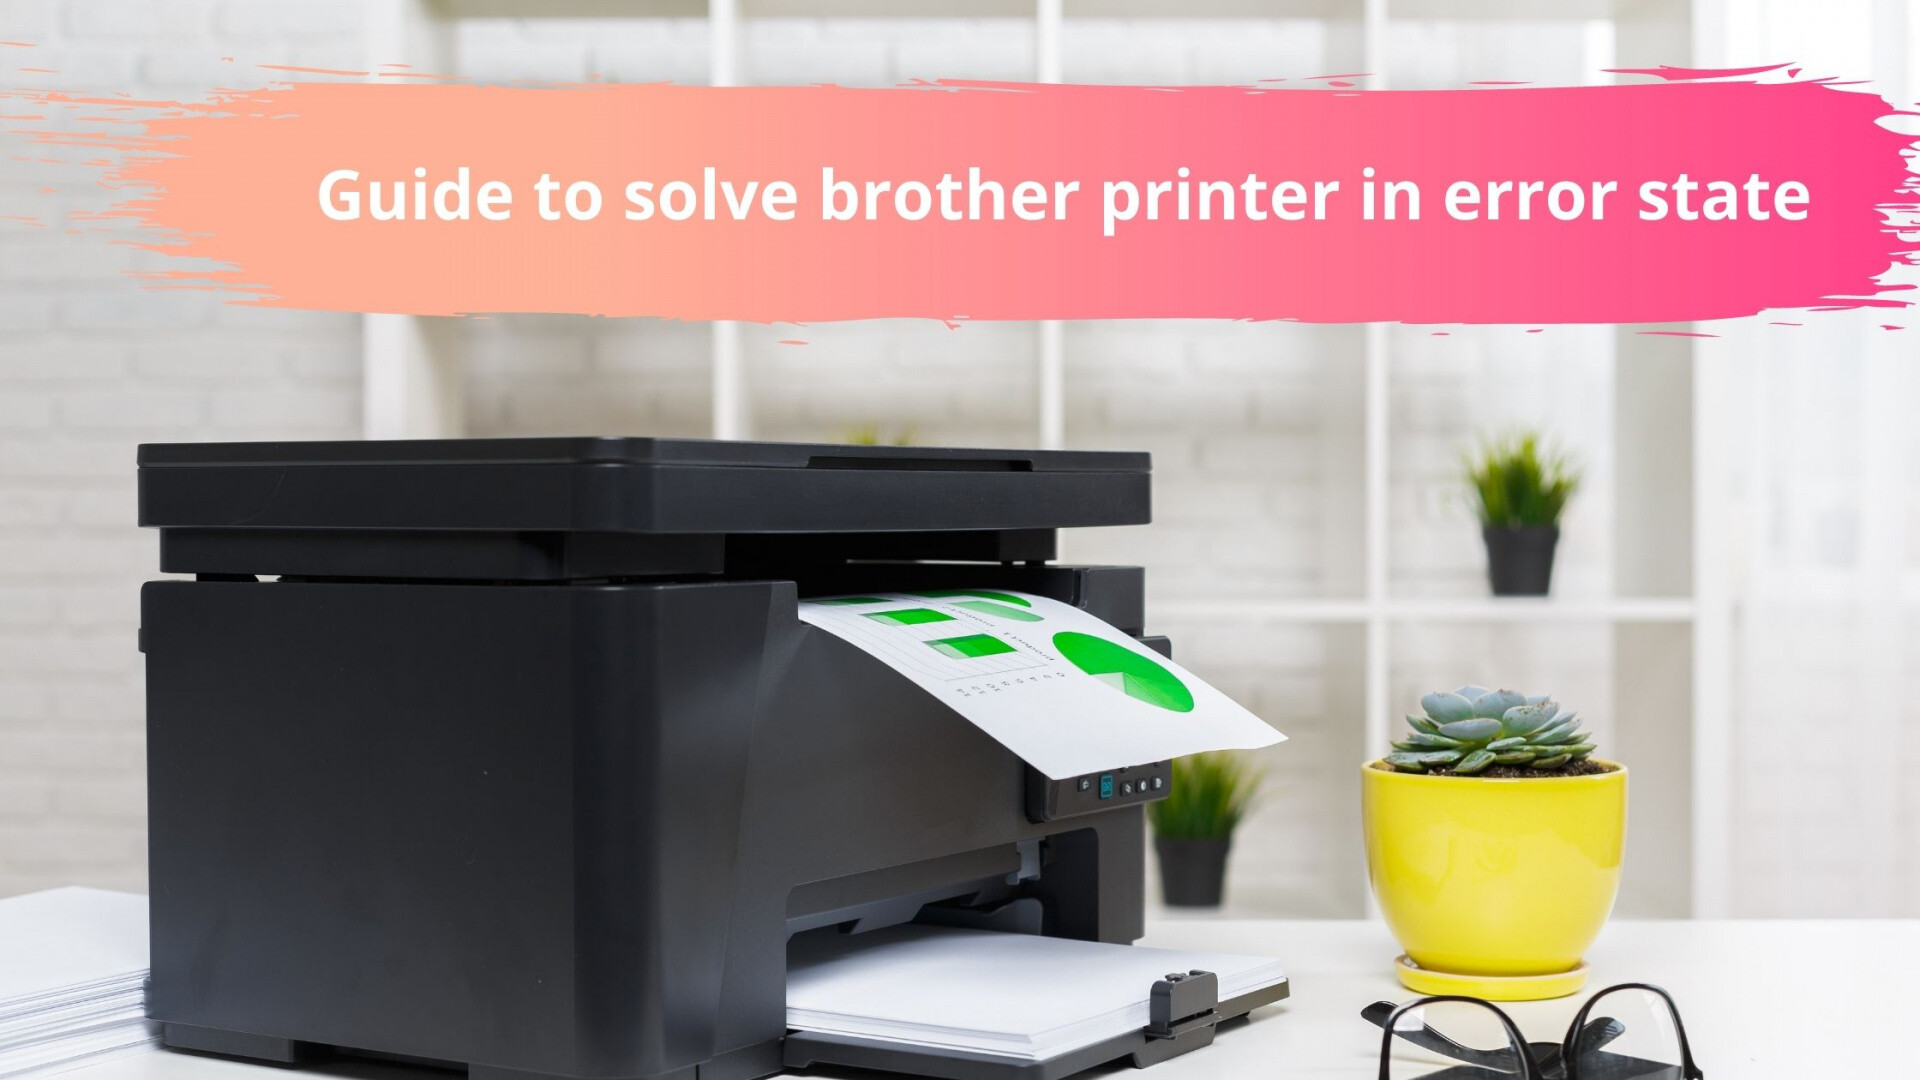 Guide to solve brother printer in error state